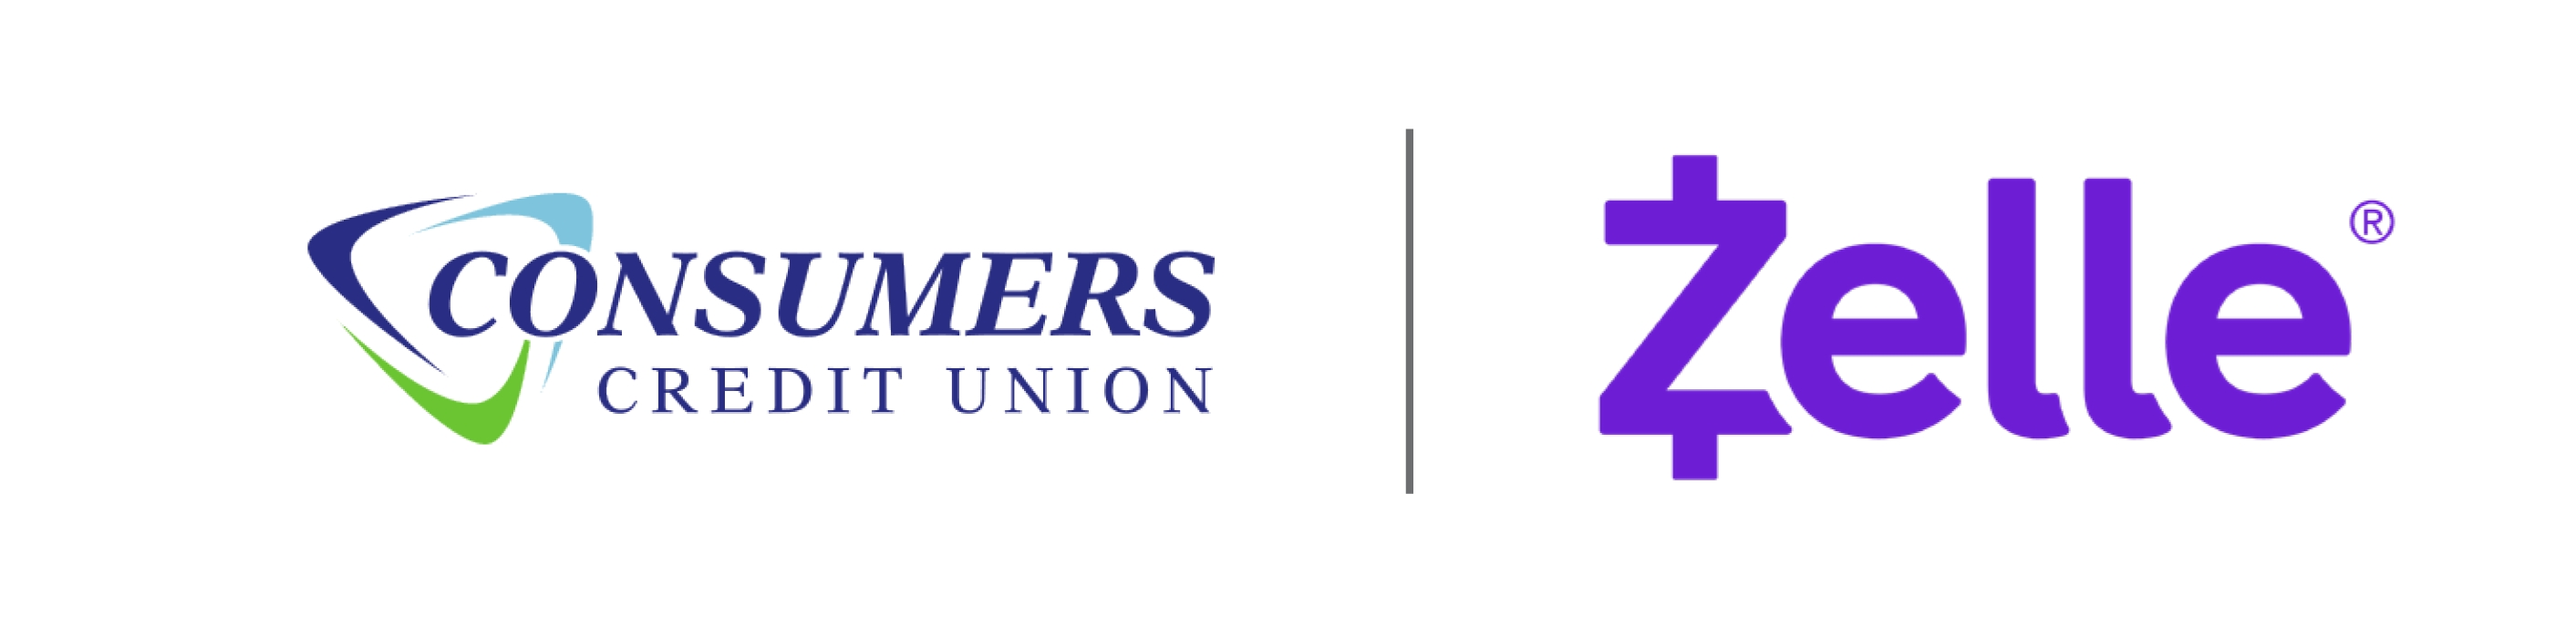 Zelle and Consumers Logos